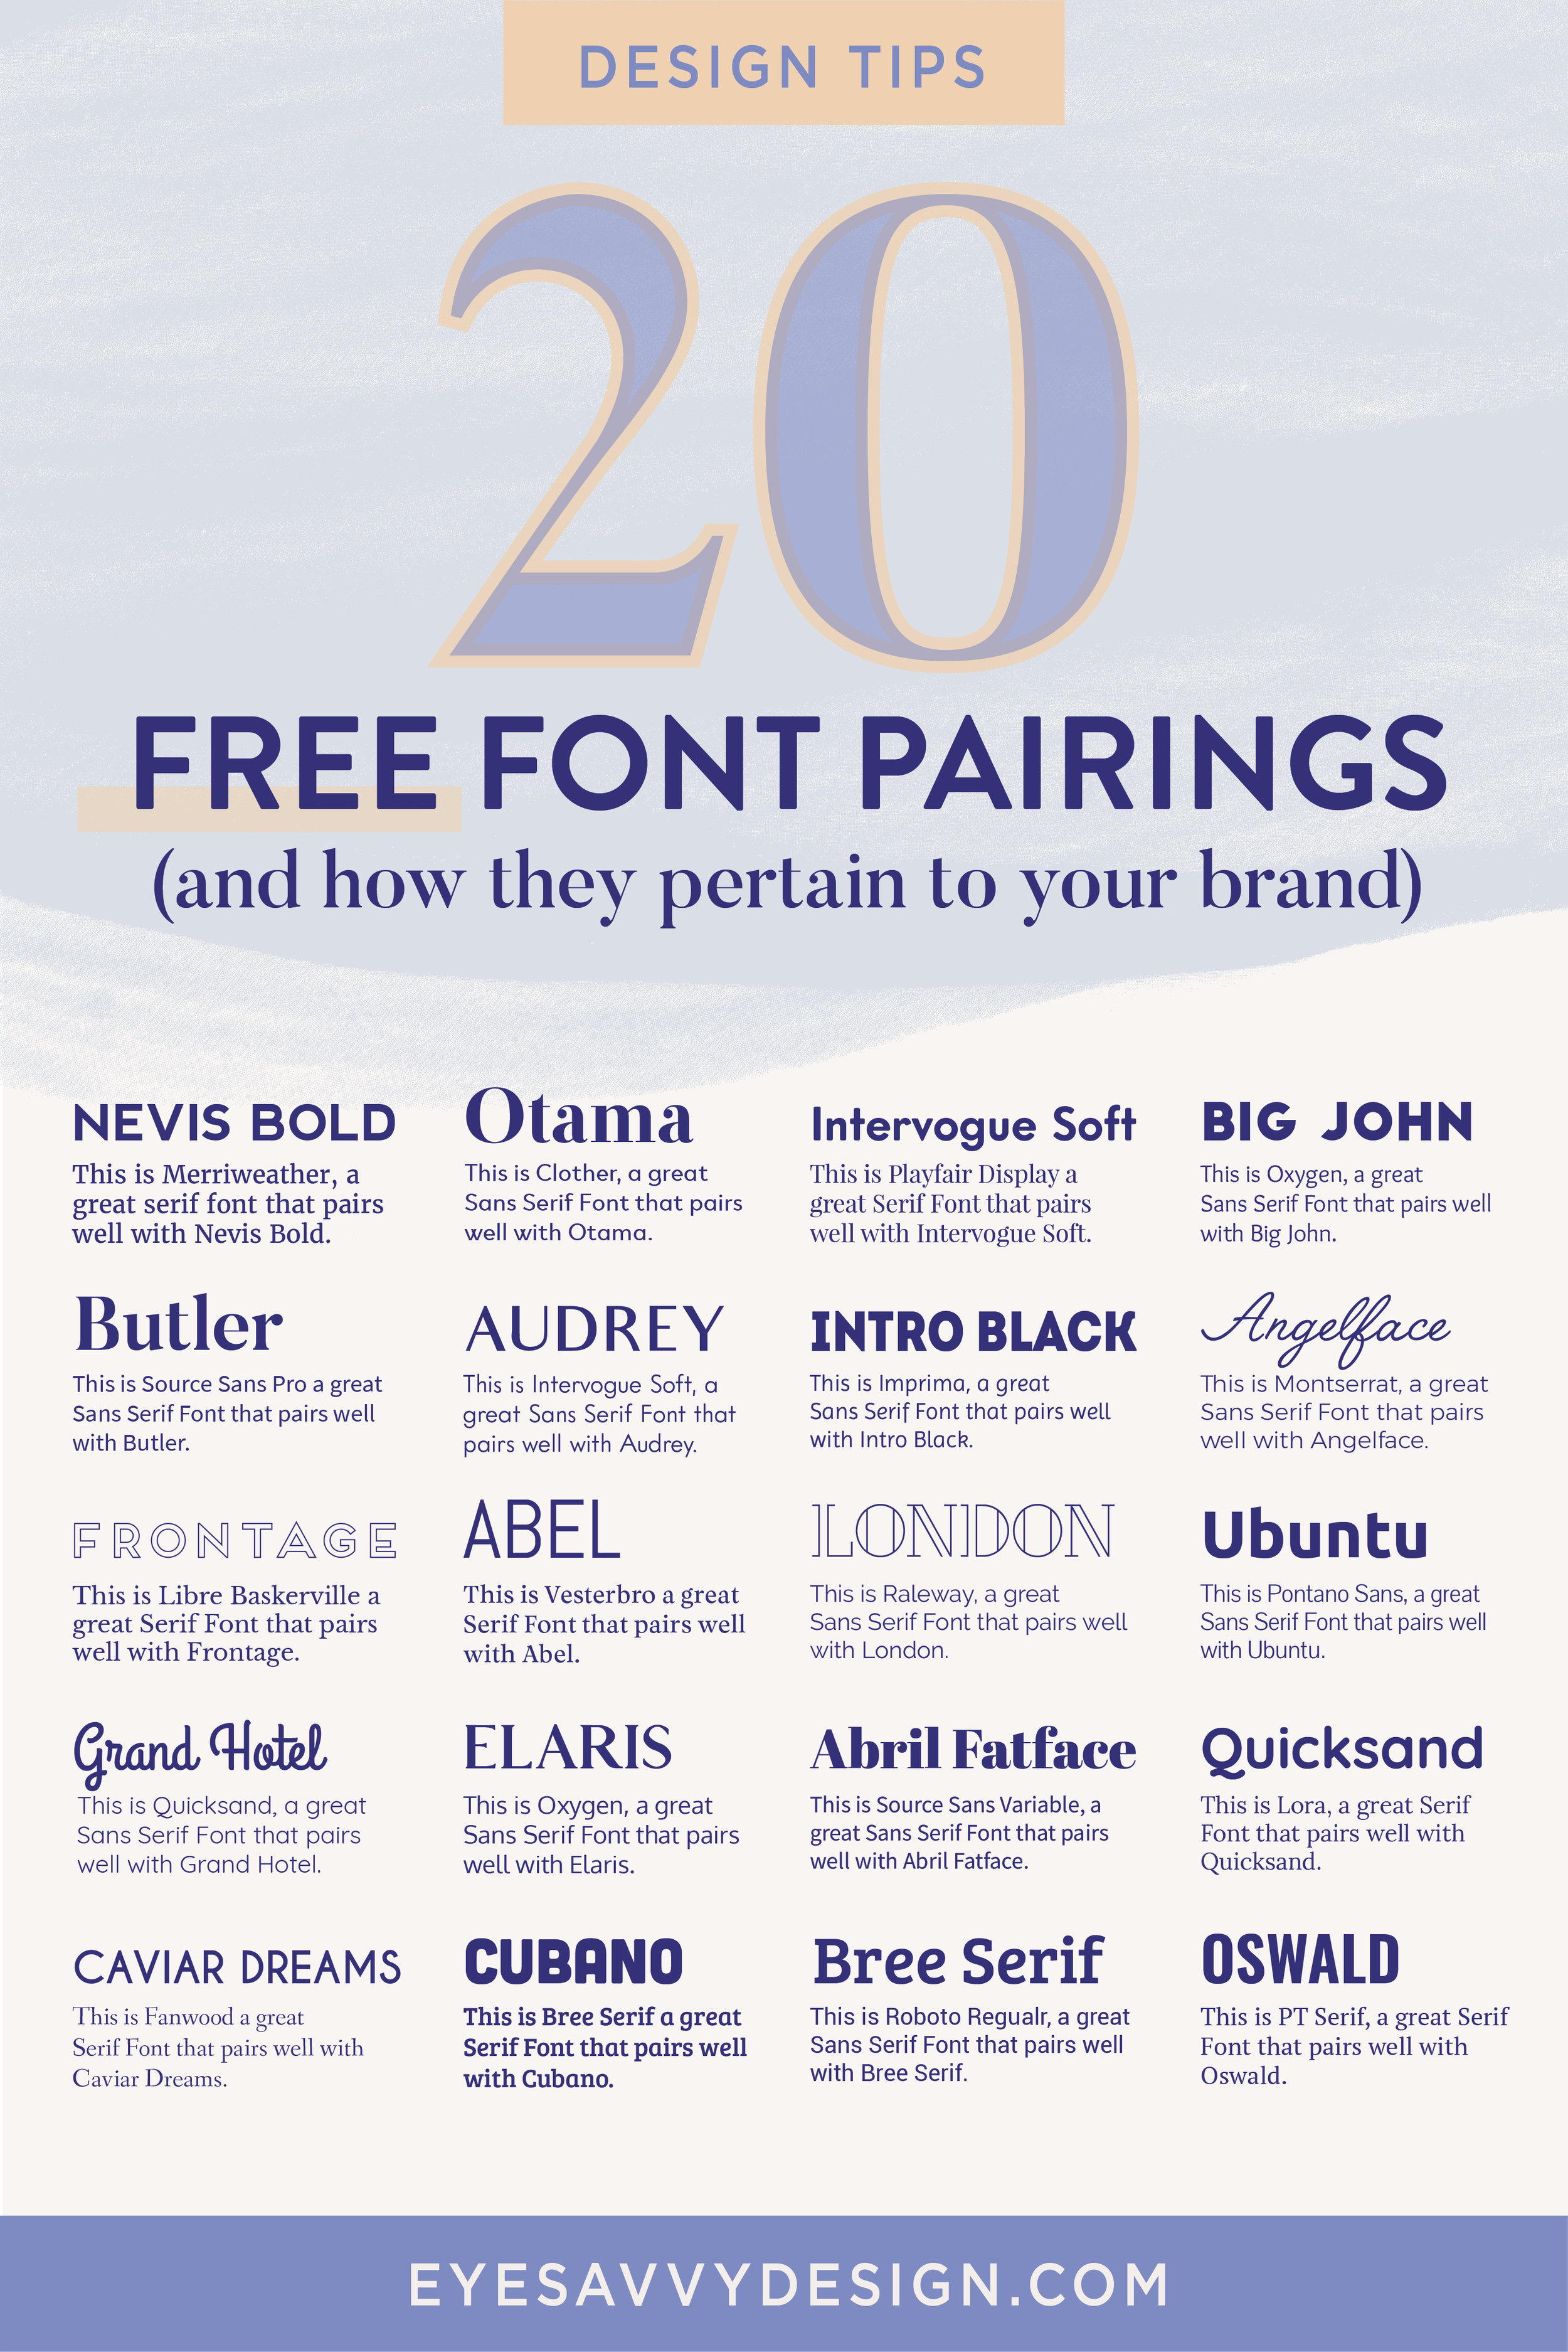 Ever wonder what font pairings are and how they pertain to your brand? This blog post explains exactly what a font pairing is and when and how you should use them. This post also includes links to download all of them! Check them out and read more #freefonts #fontpairings #brandfonts #branding101 #branding #graphicdesigntips #fontcombinations #branding #graphicdesigner #brandconcept  #brandidentity  #brandingdesign #designprocess